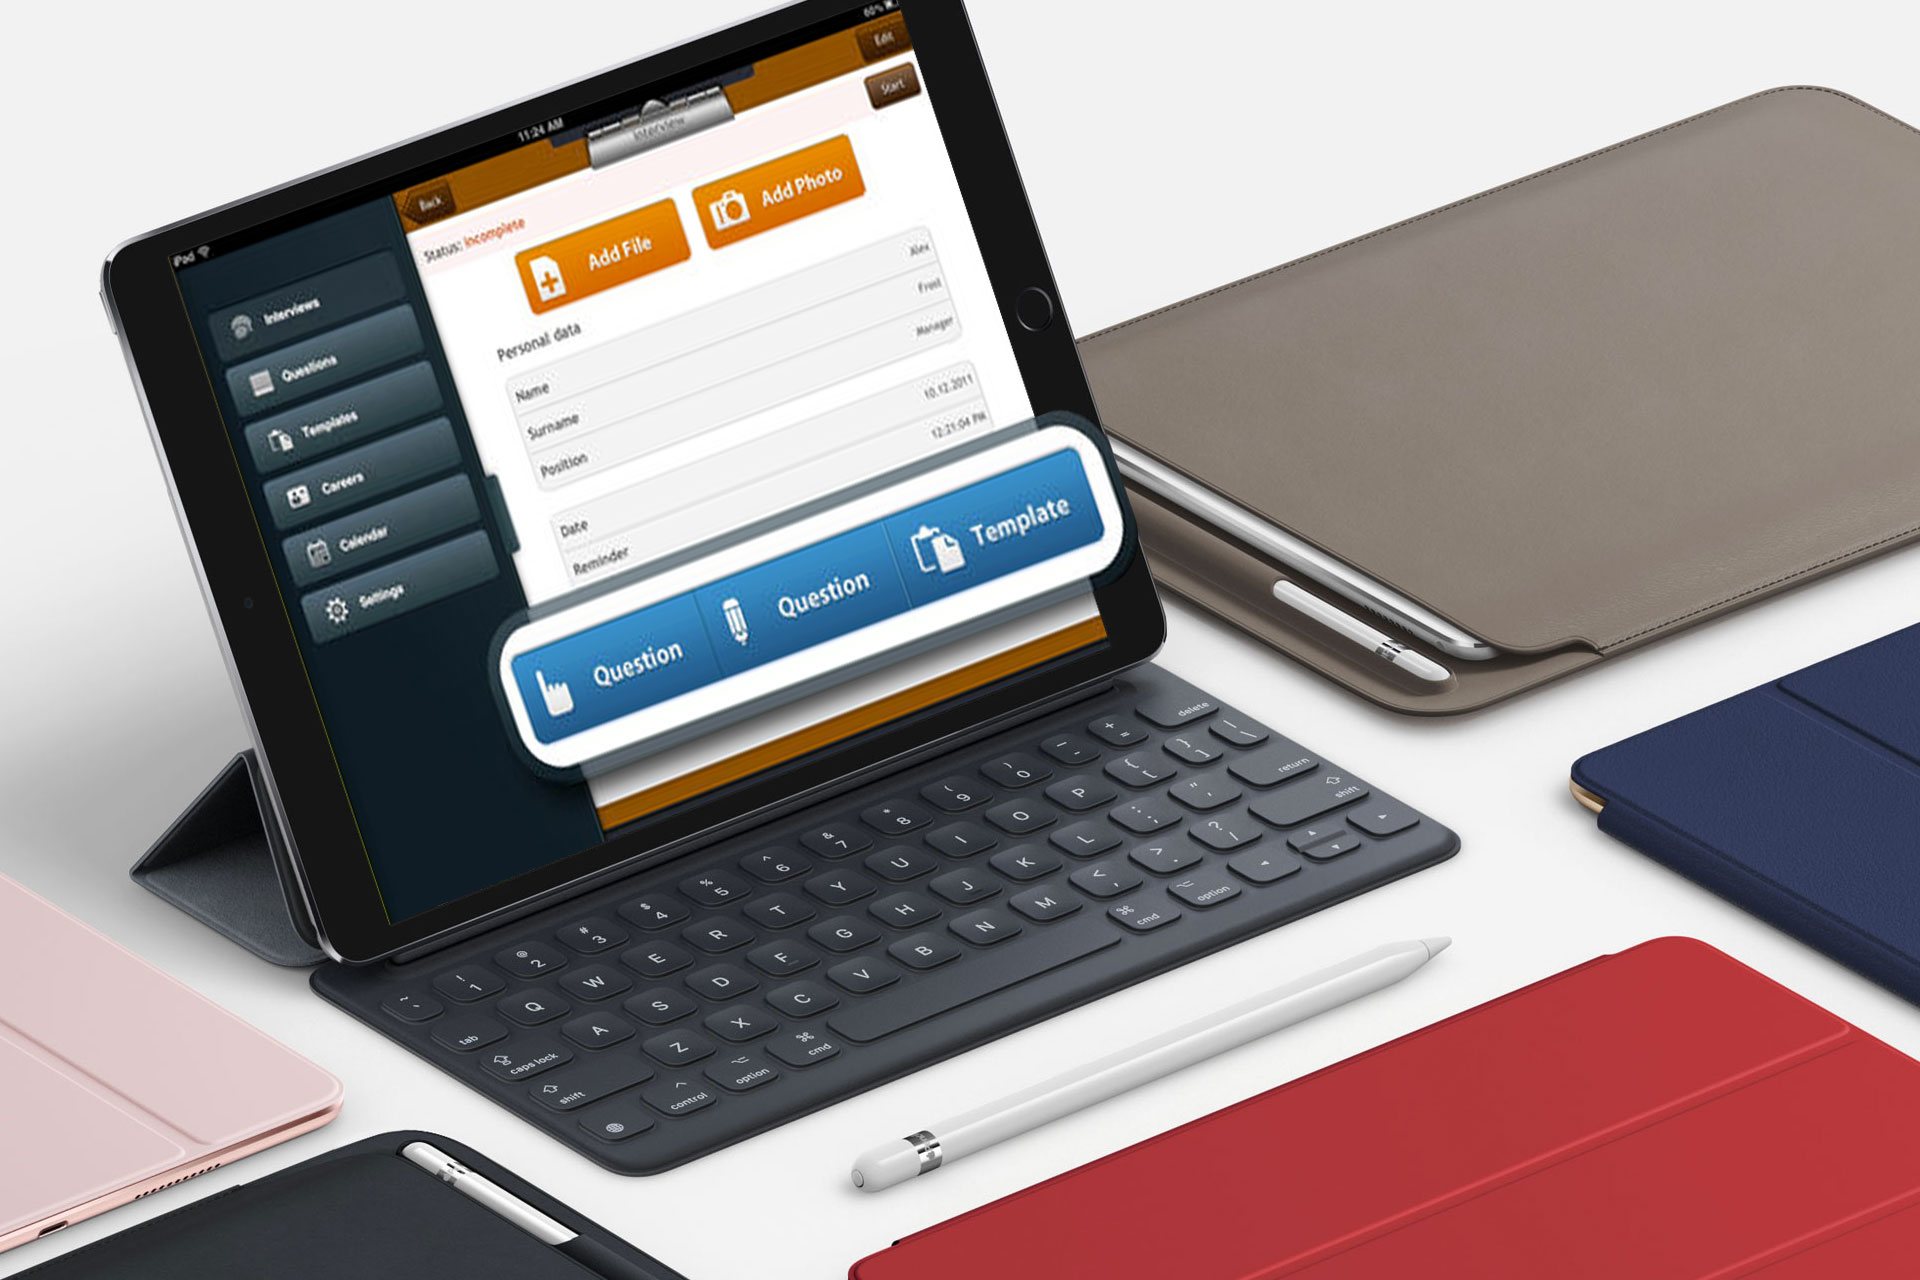 INTERVIEW ASSISTANT mobile app for tablet